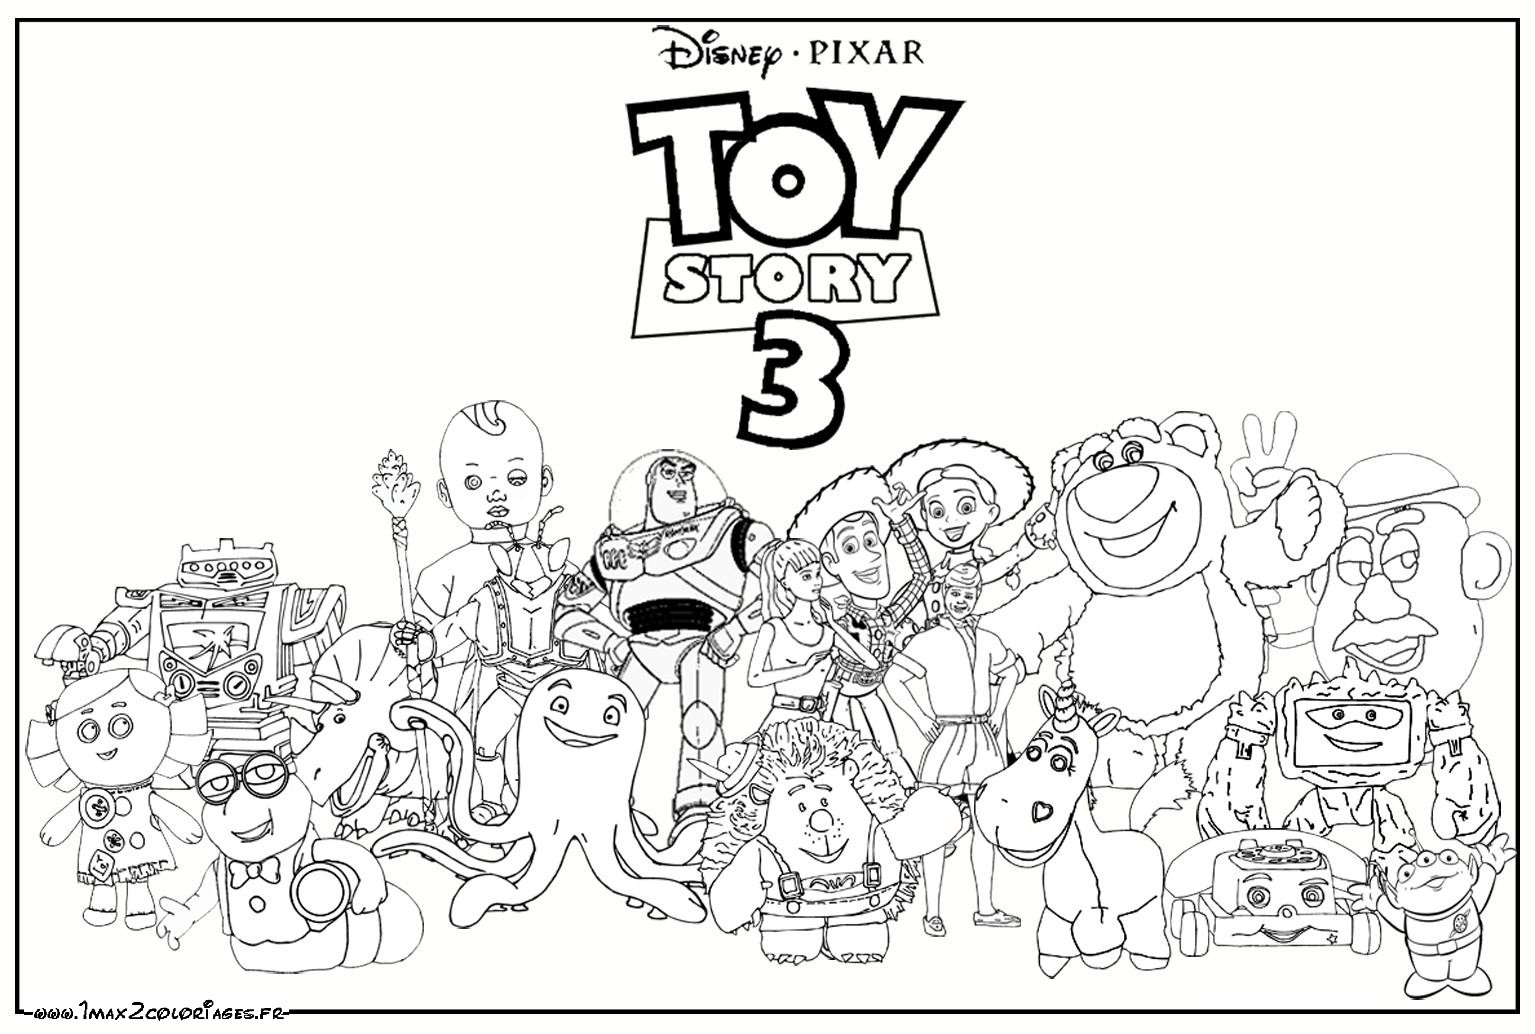 Coloriage Disney Woody.Woody Buzz Lightyear Jessy Rex Hamm Zigzag Toy